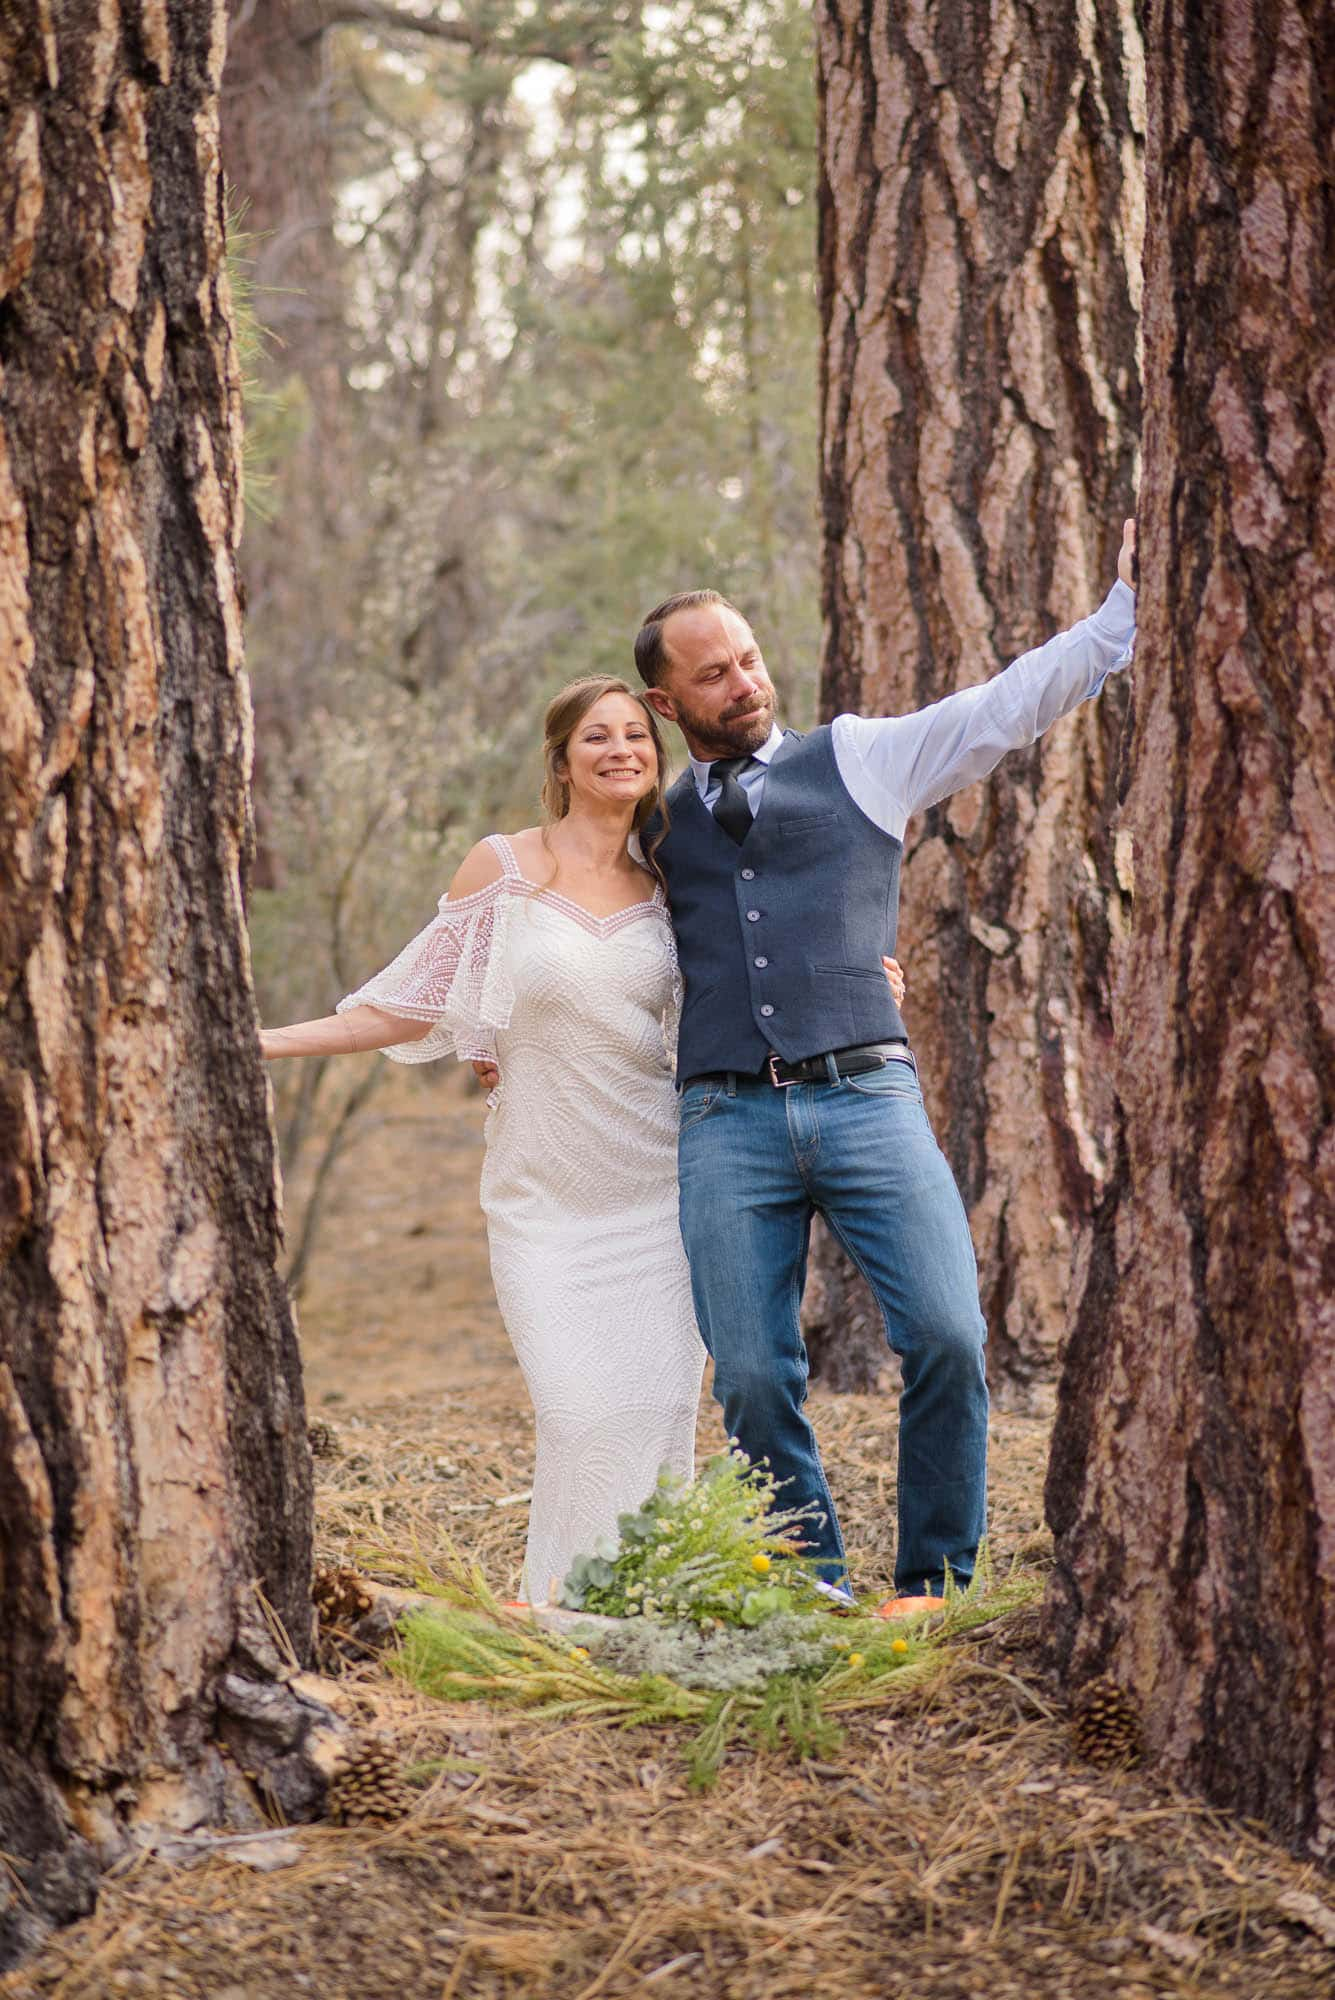 032_Alan_and_Heidi_Big_Bear_Elopement_Holly_Sean